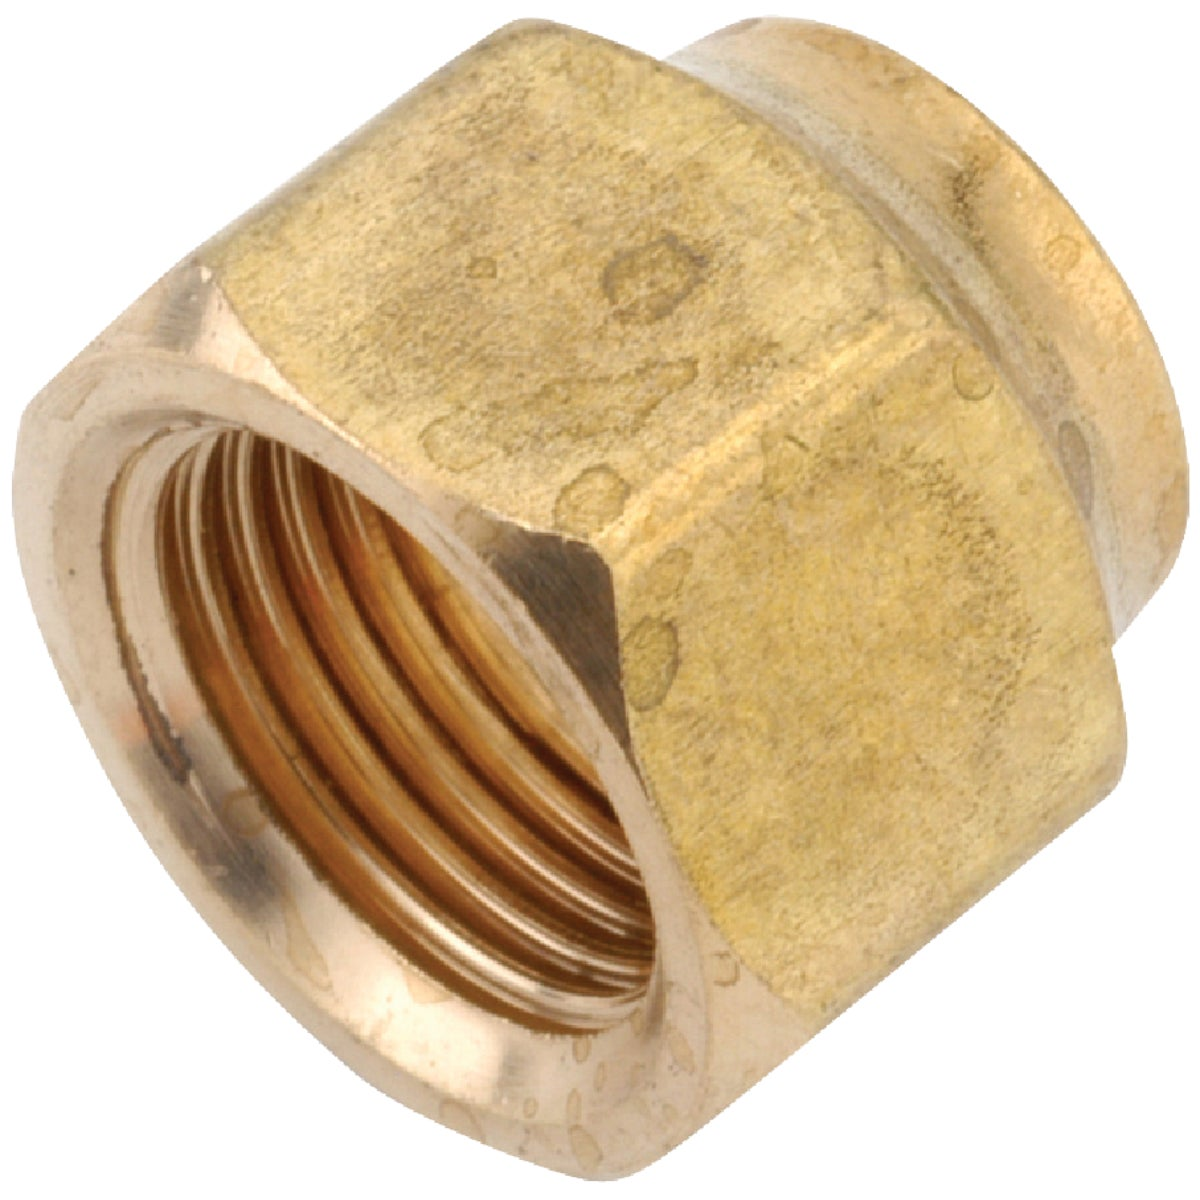 3/8X1/4 REDUCING NUT - 754020-0604 by Anderson Metals Corp